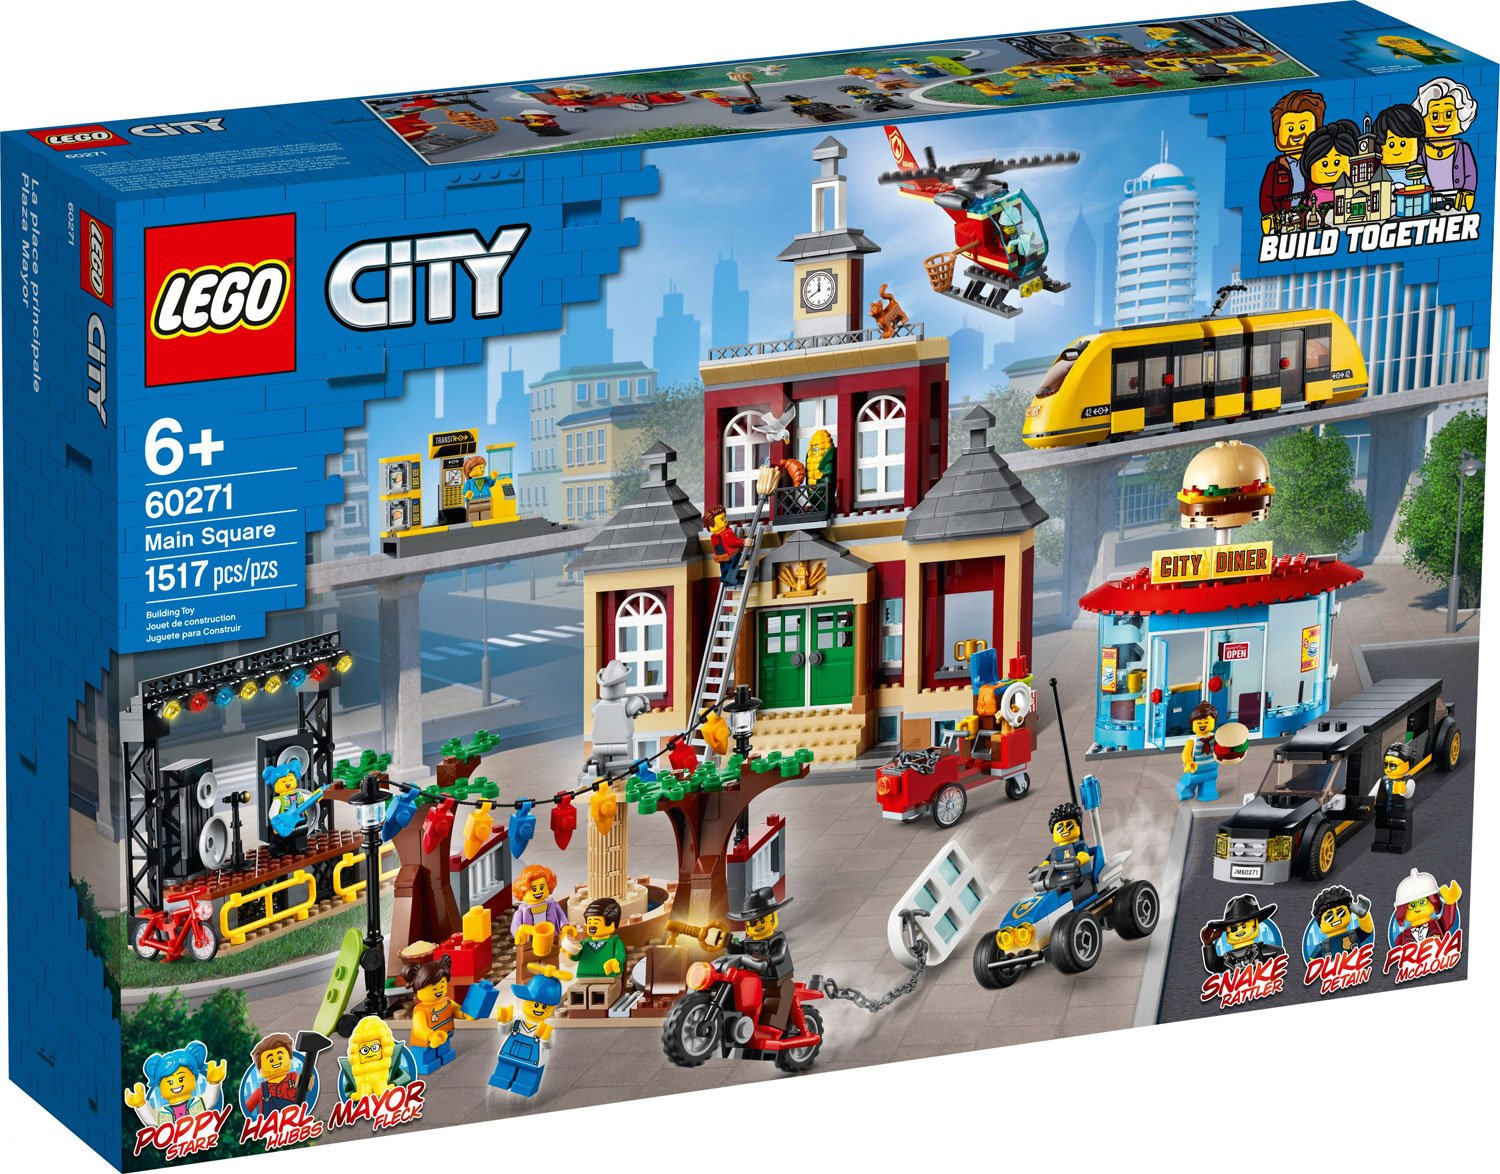 Lego City 2020 Rumors Speculation And Discussion Lego Town Eurobricks Forums